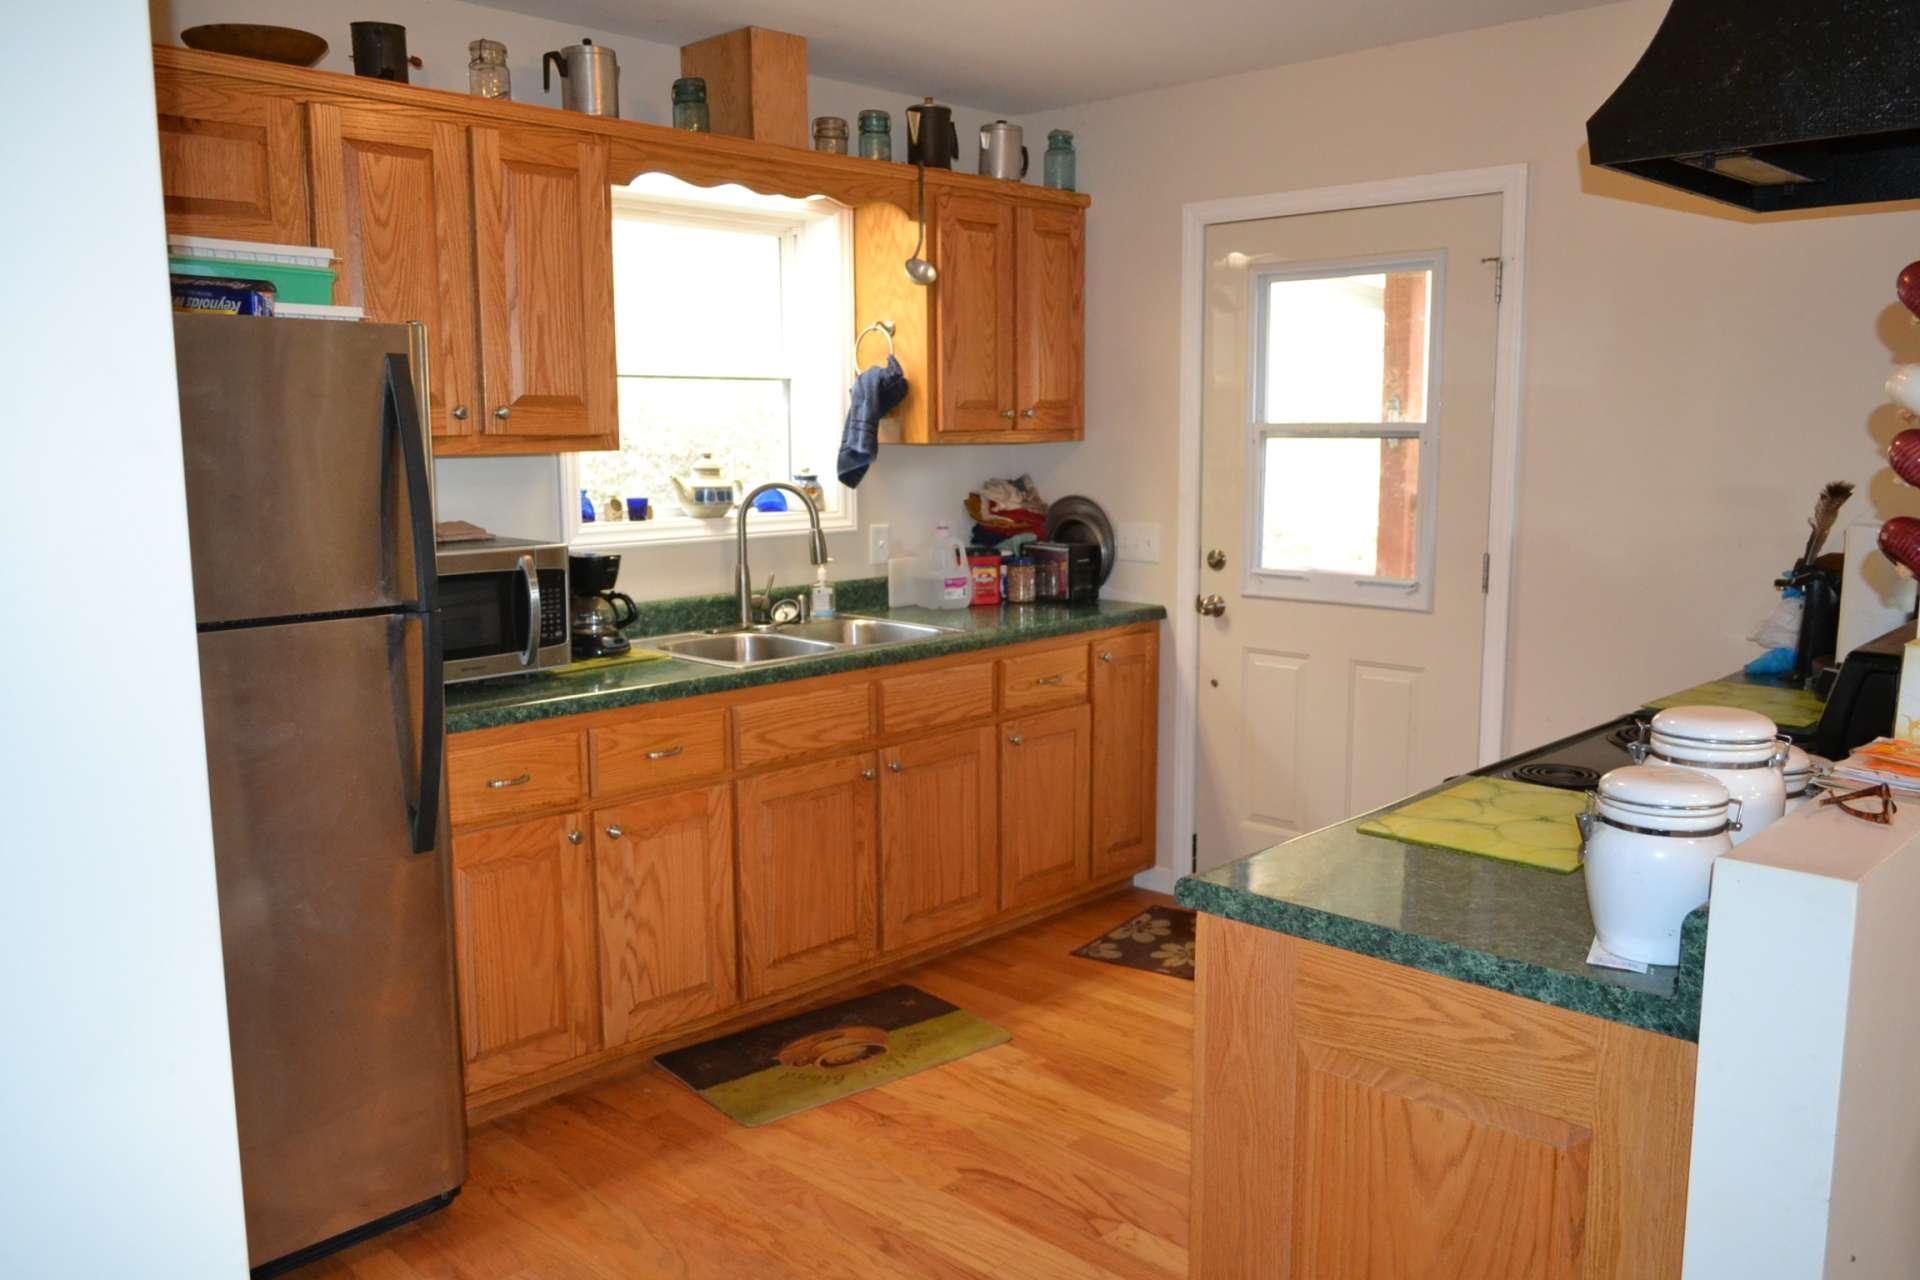 The step saving and efficient kitchen offers ample work and storage space.